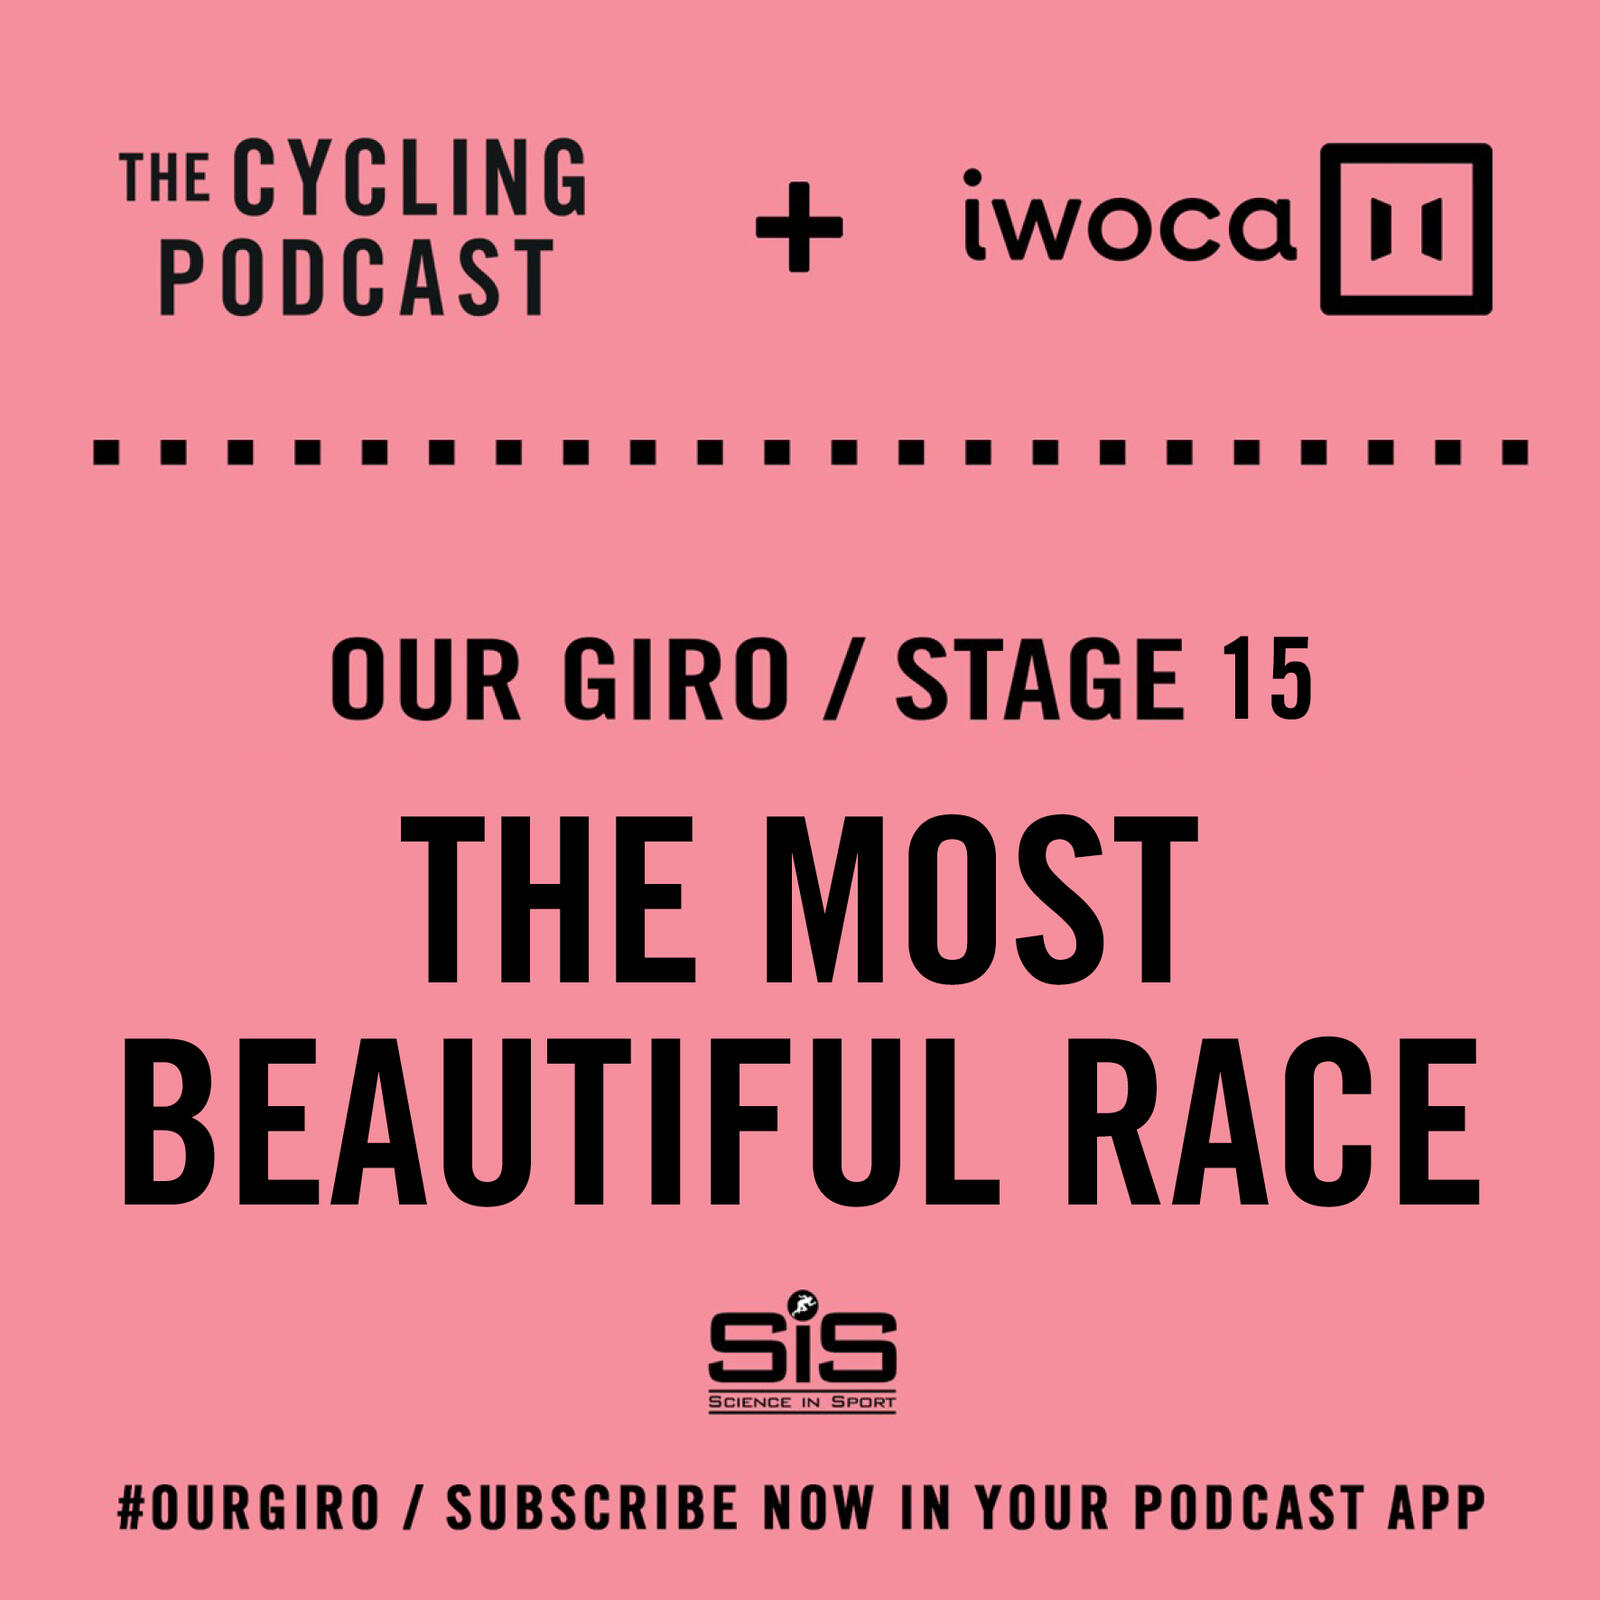 62: Our Giro stage 15: The most beautiful race